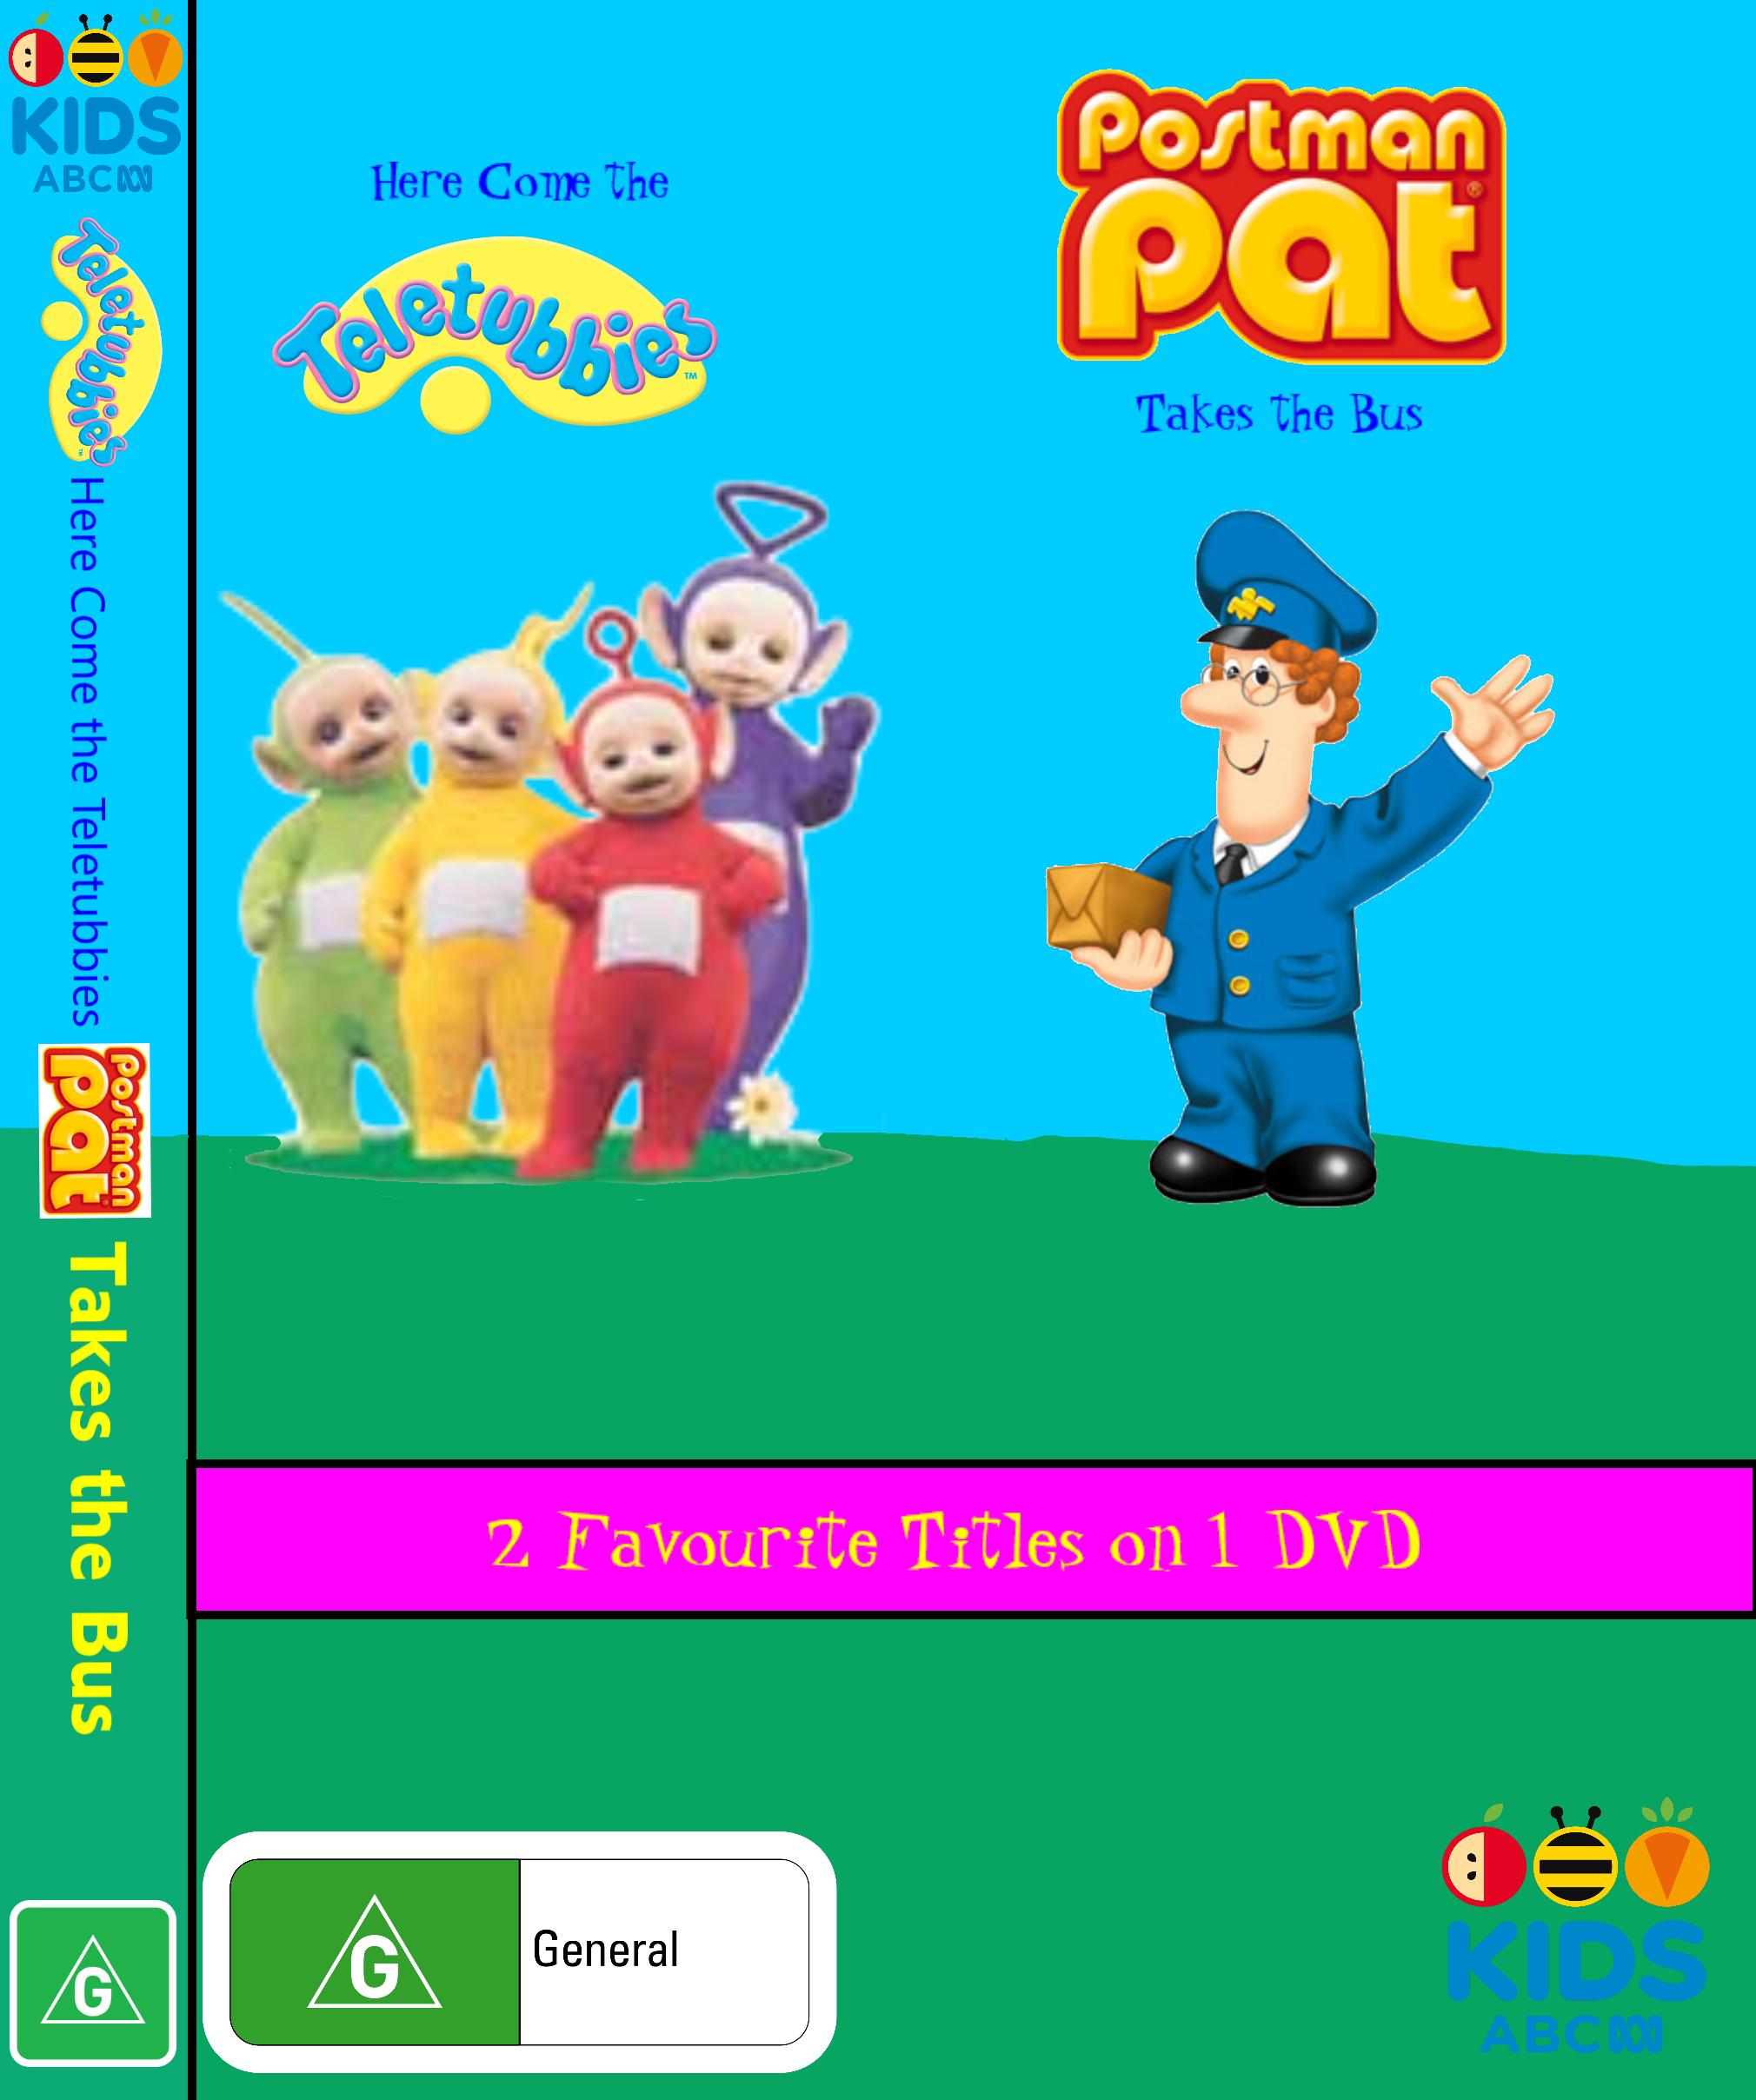 Teletubbies /Postman Pat: Here Come the Teletubbies/Postman Pat Takes the Bus (video)